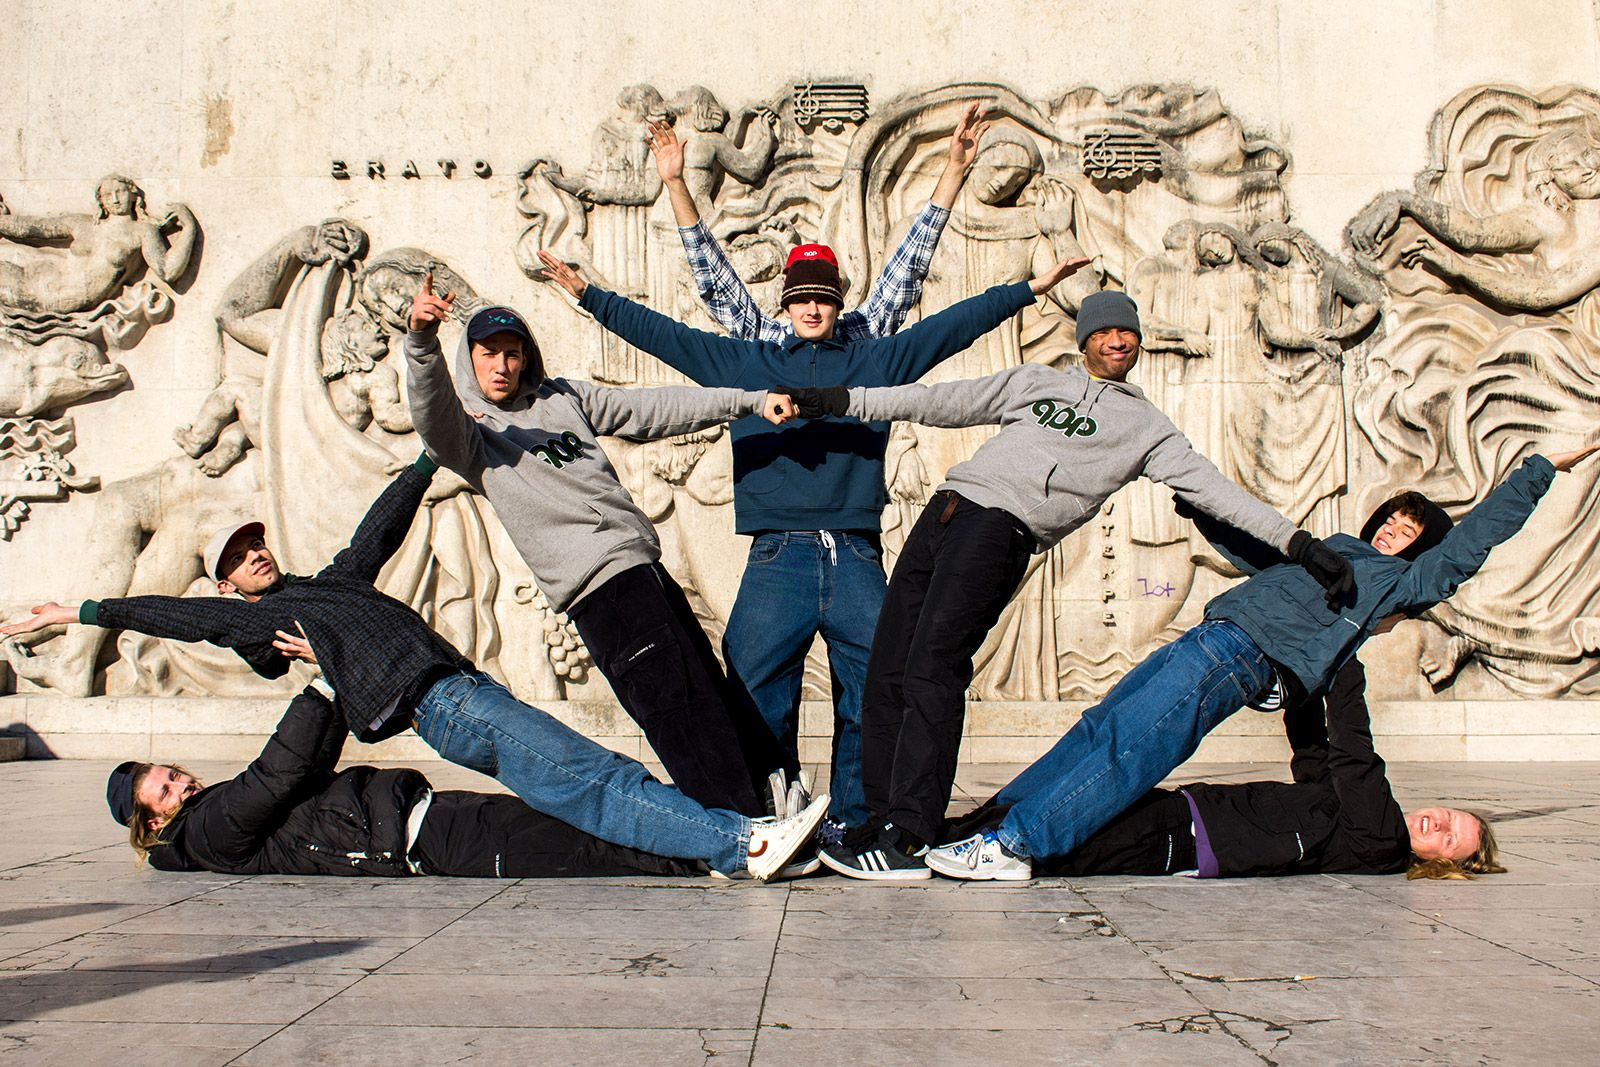 Pop Trading Company's riders forming a human tower on a skate trip to Paris.